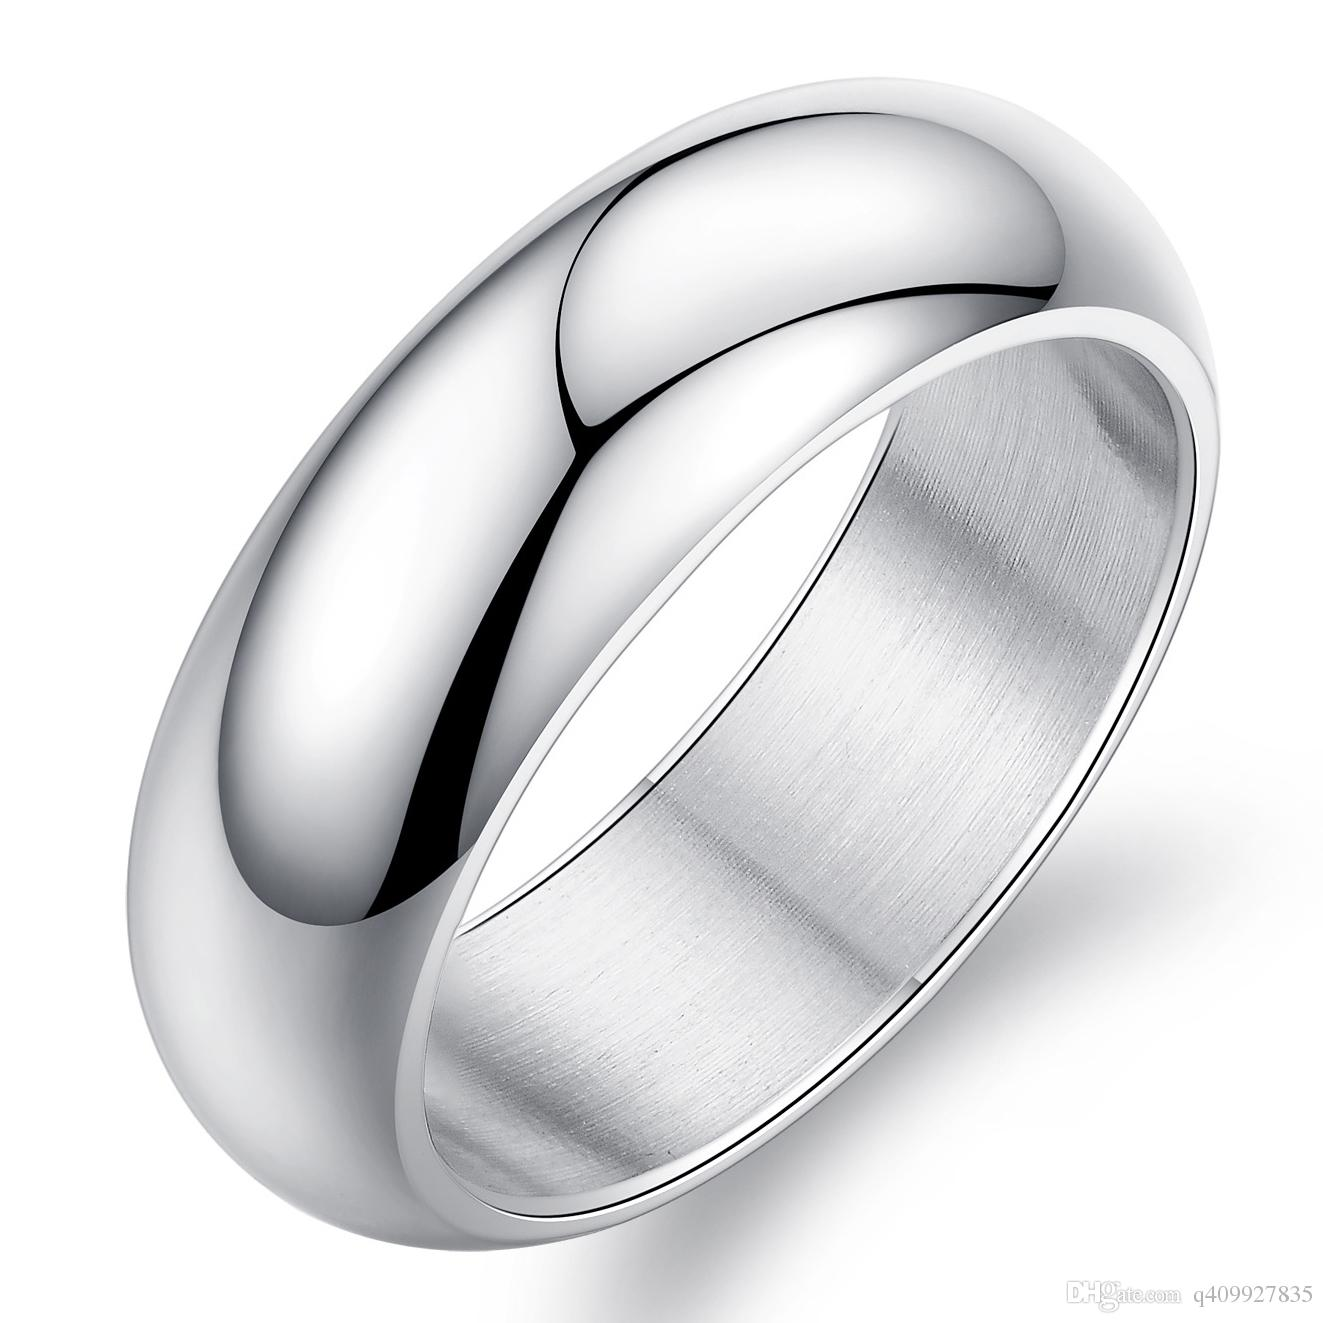 stainless steel wedding rings prices stainless steel wedding bands Stainless steel wedding rings prices